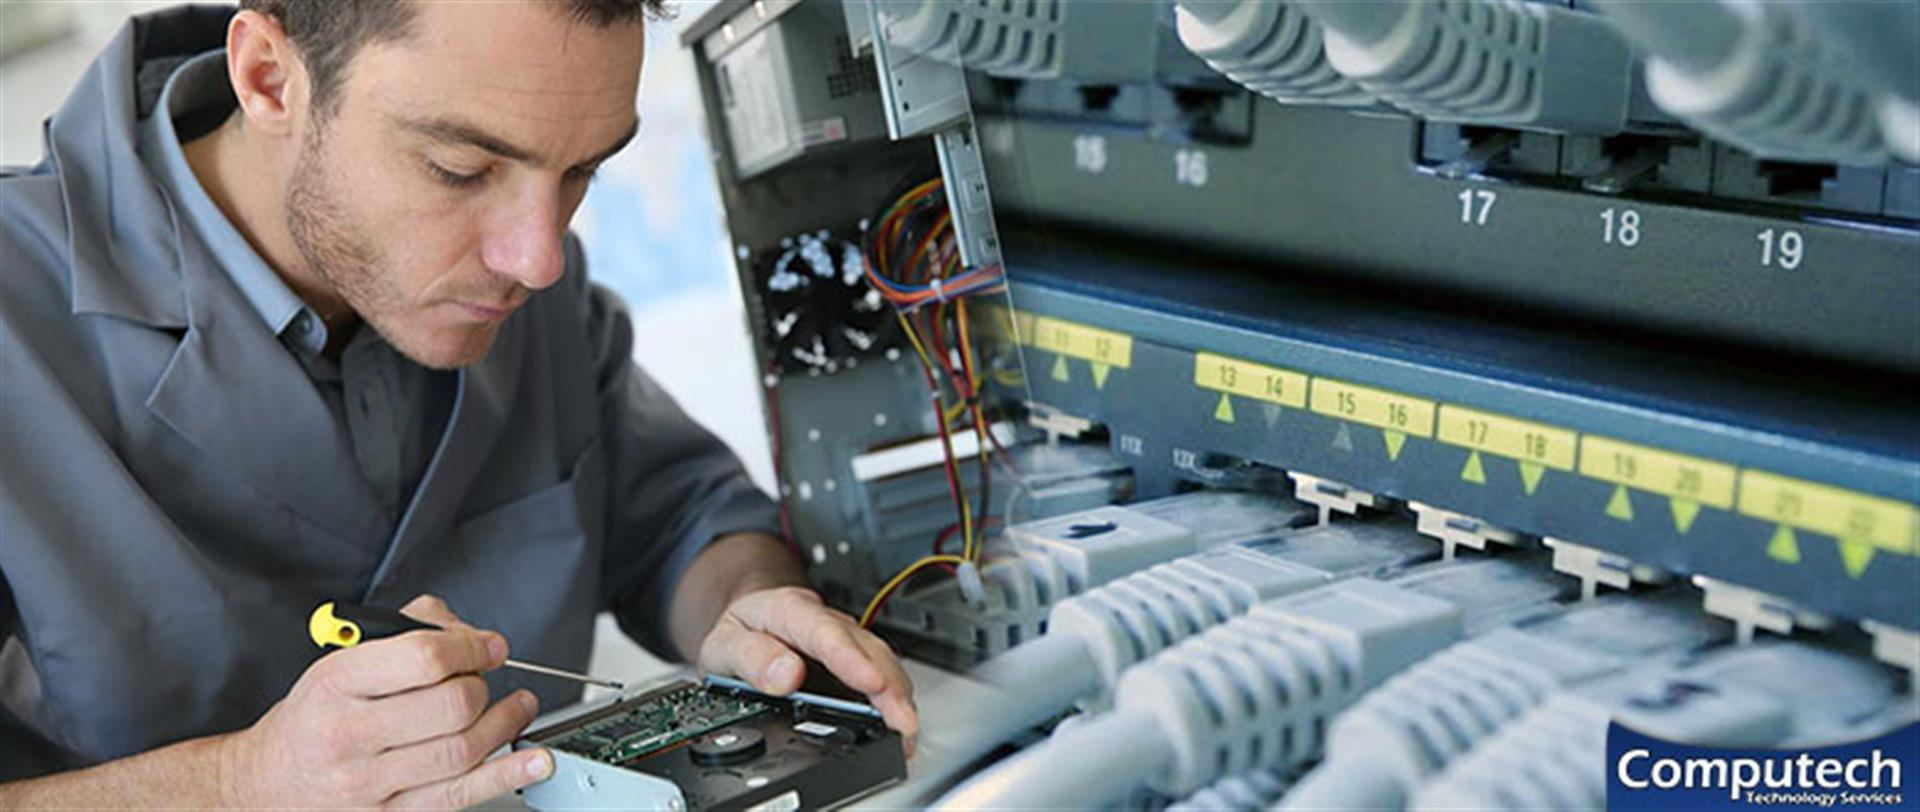 Valley Grande Alabama On Site Computer & Printer Repairs, Networks, Voice & Data Wiring Solutions